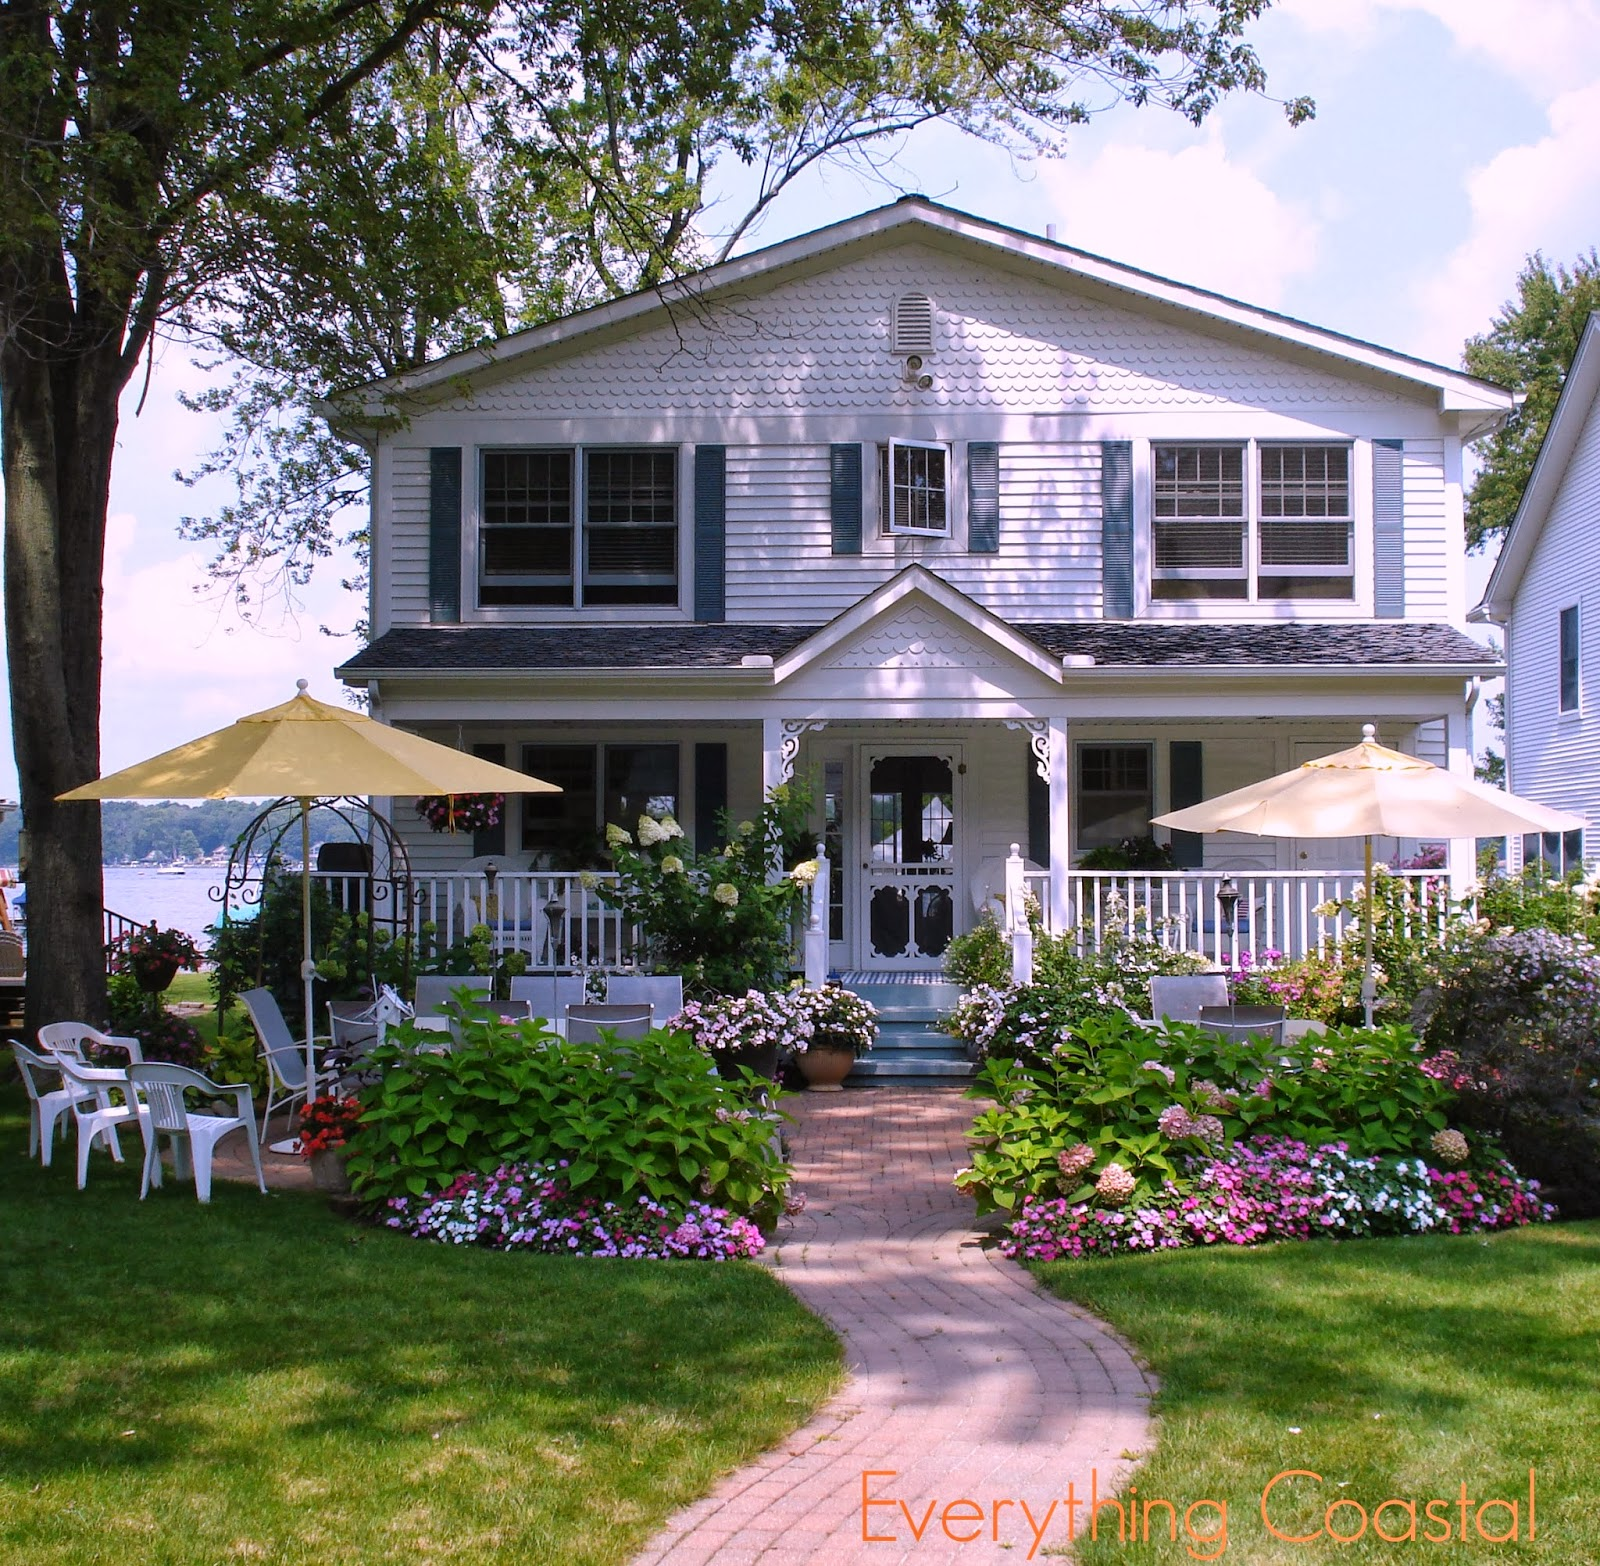 Everything coastal a michigan lakefront storybook cottage for Waterfront cottage